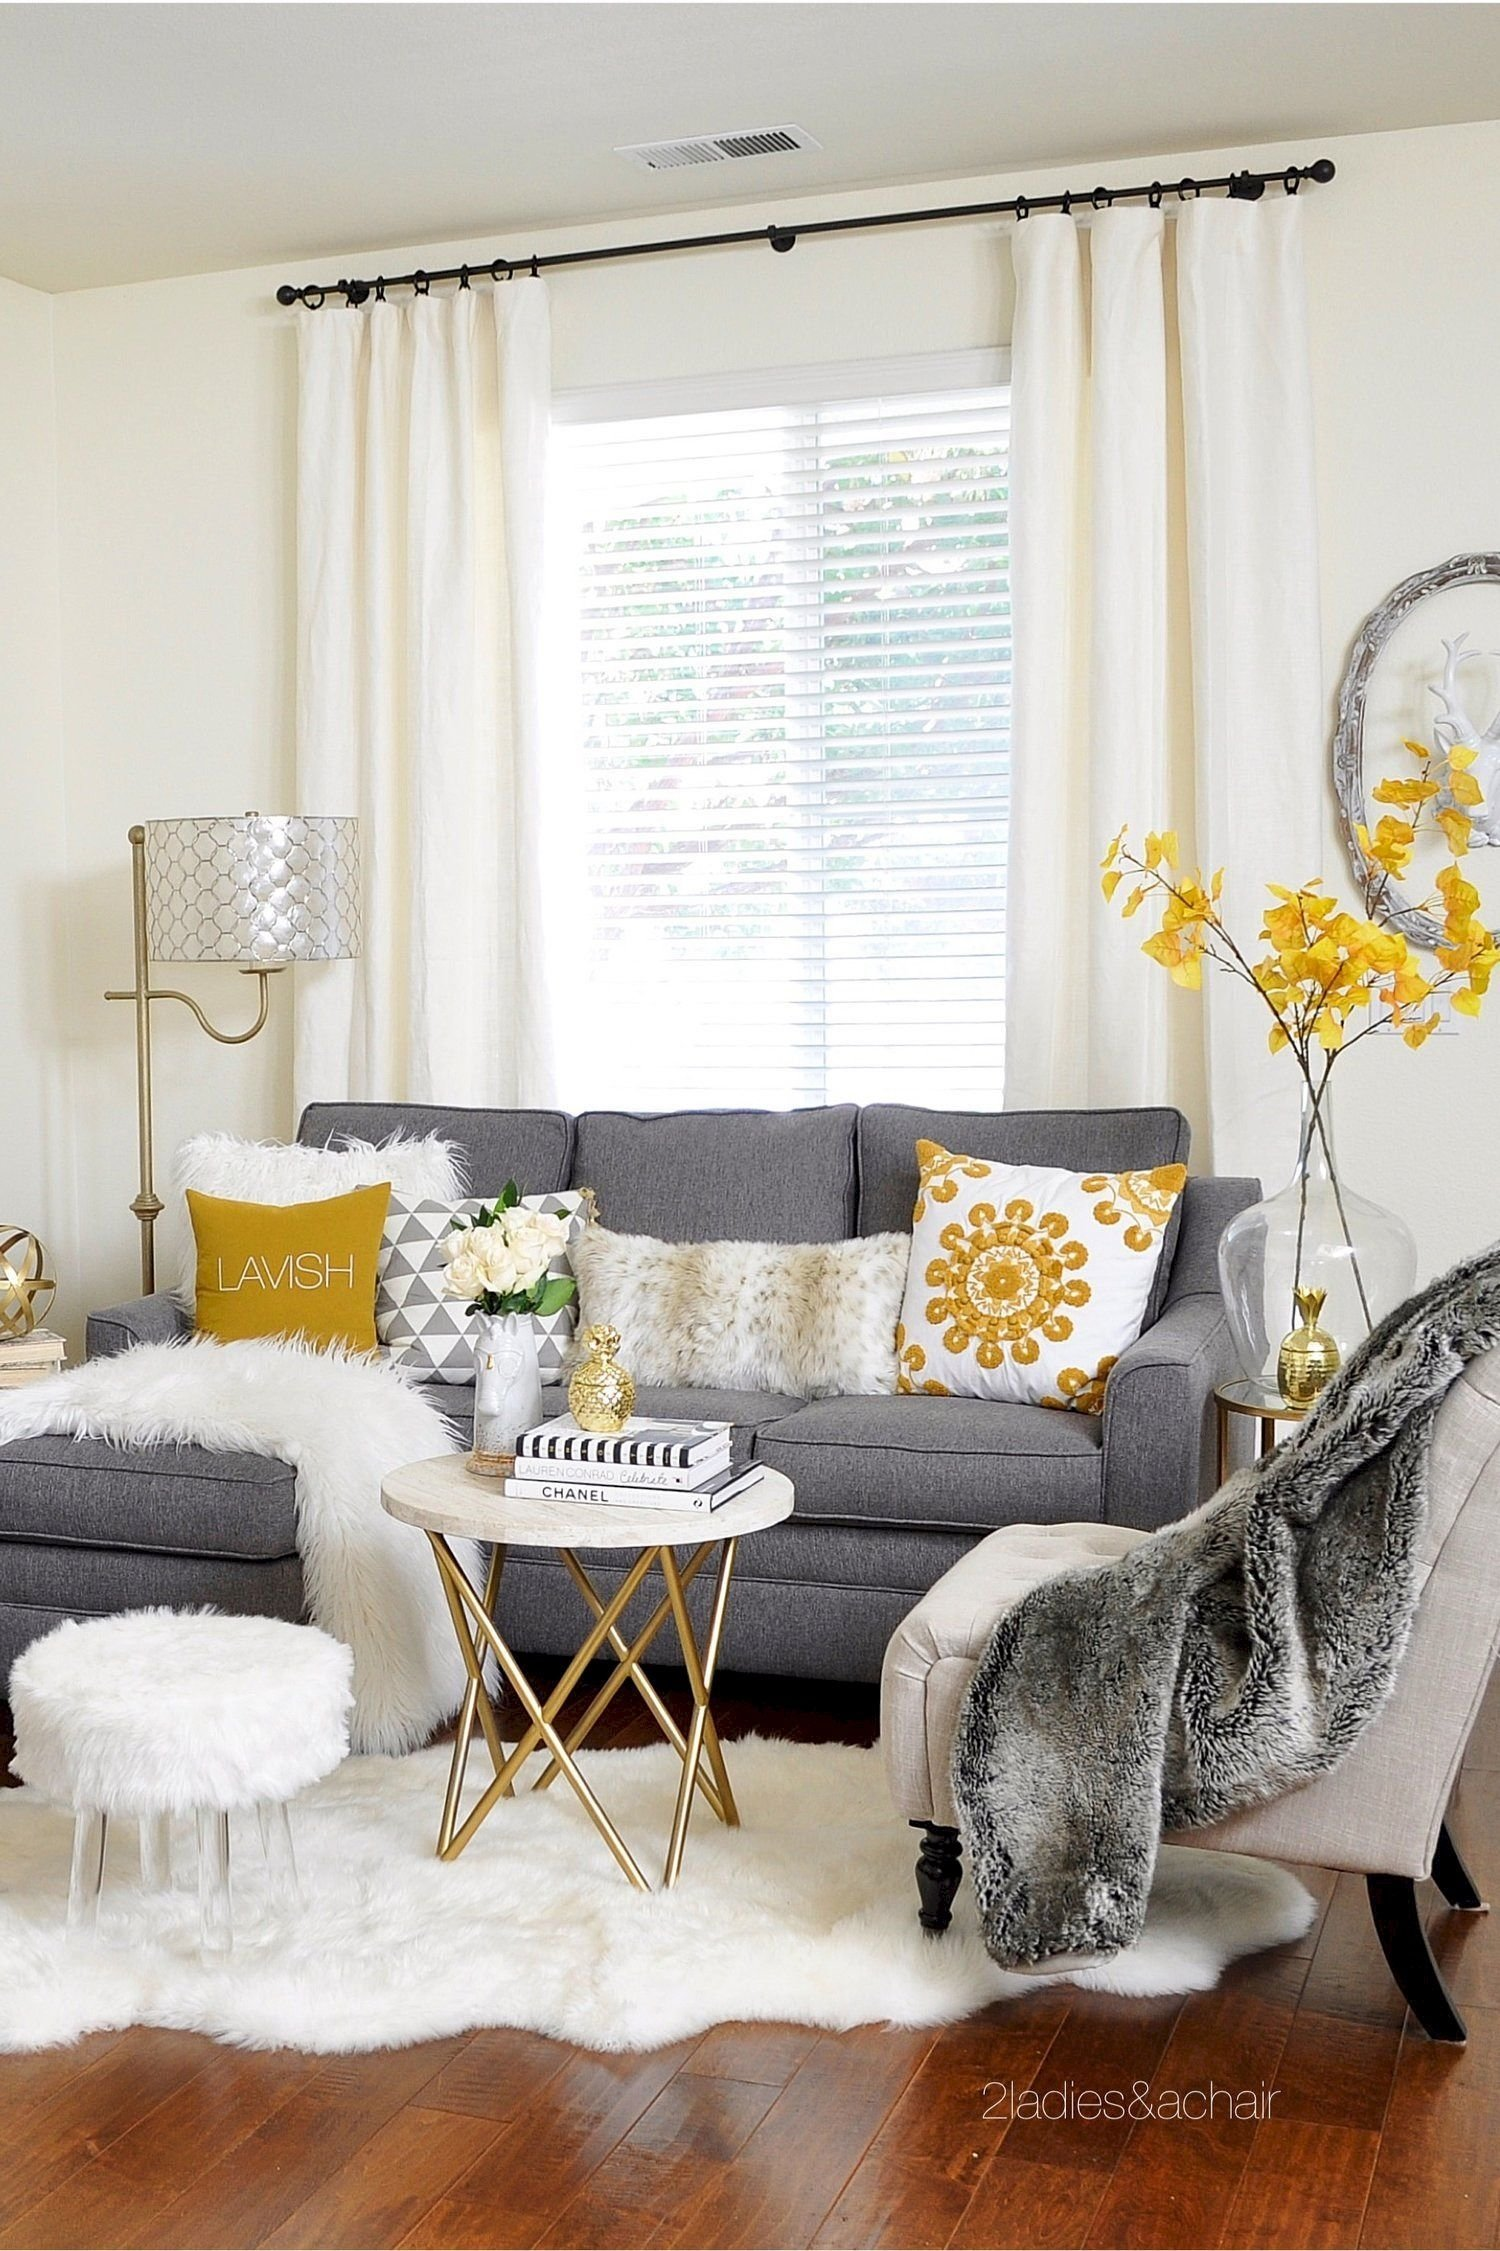 10 Cute Furniture Ideas For Small Living Rooms 25 beautiful living room design ideas small living rooms small 8 2020